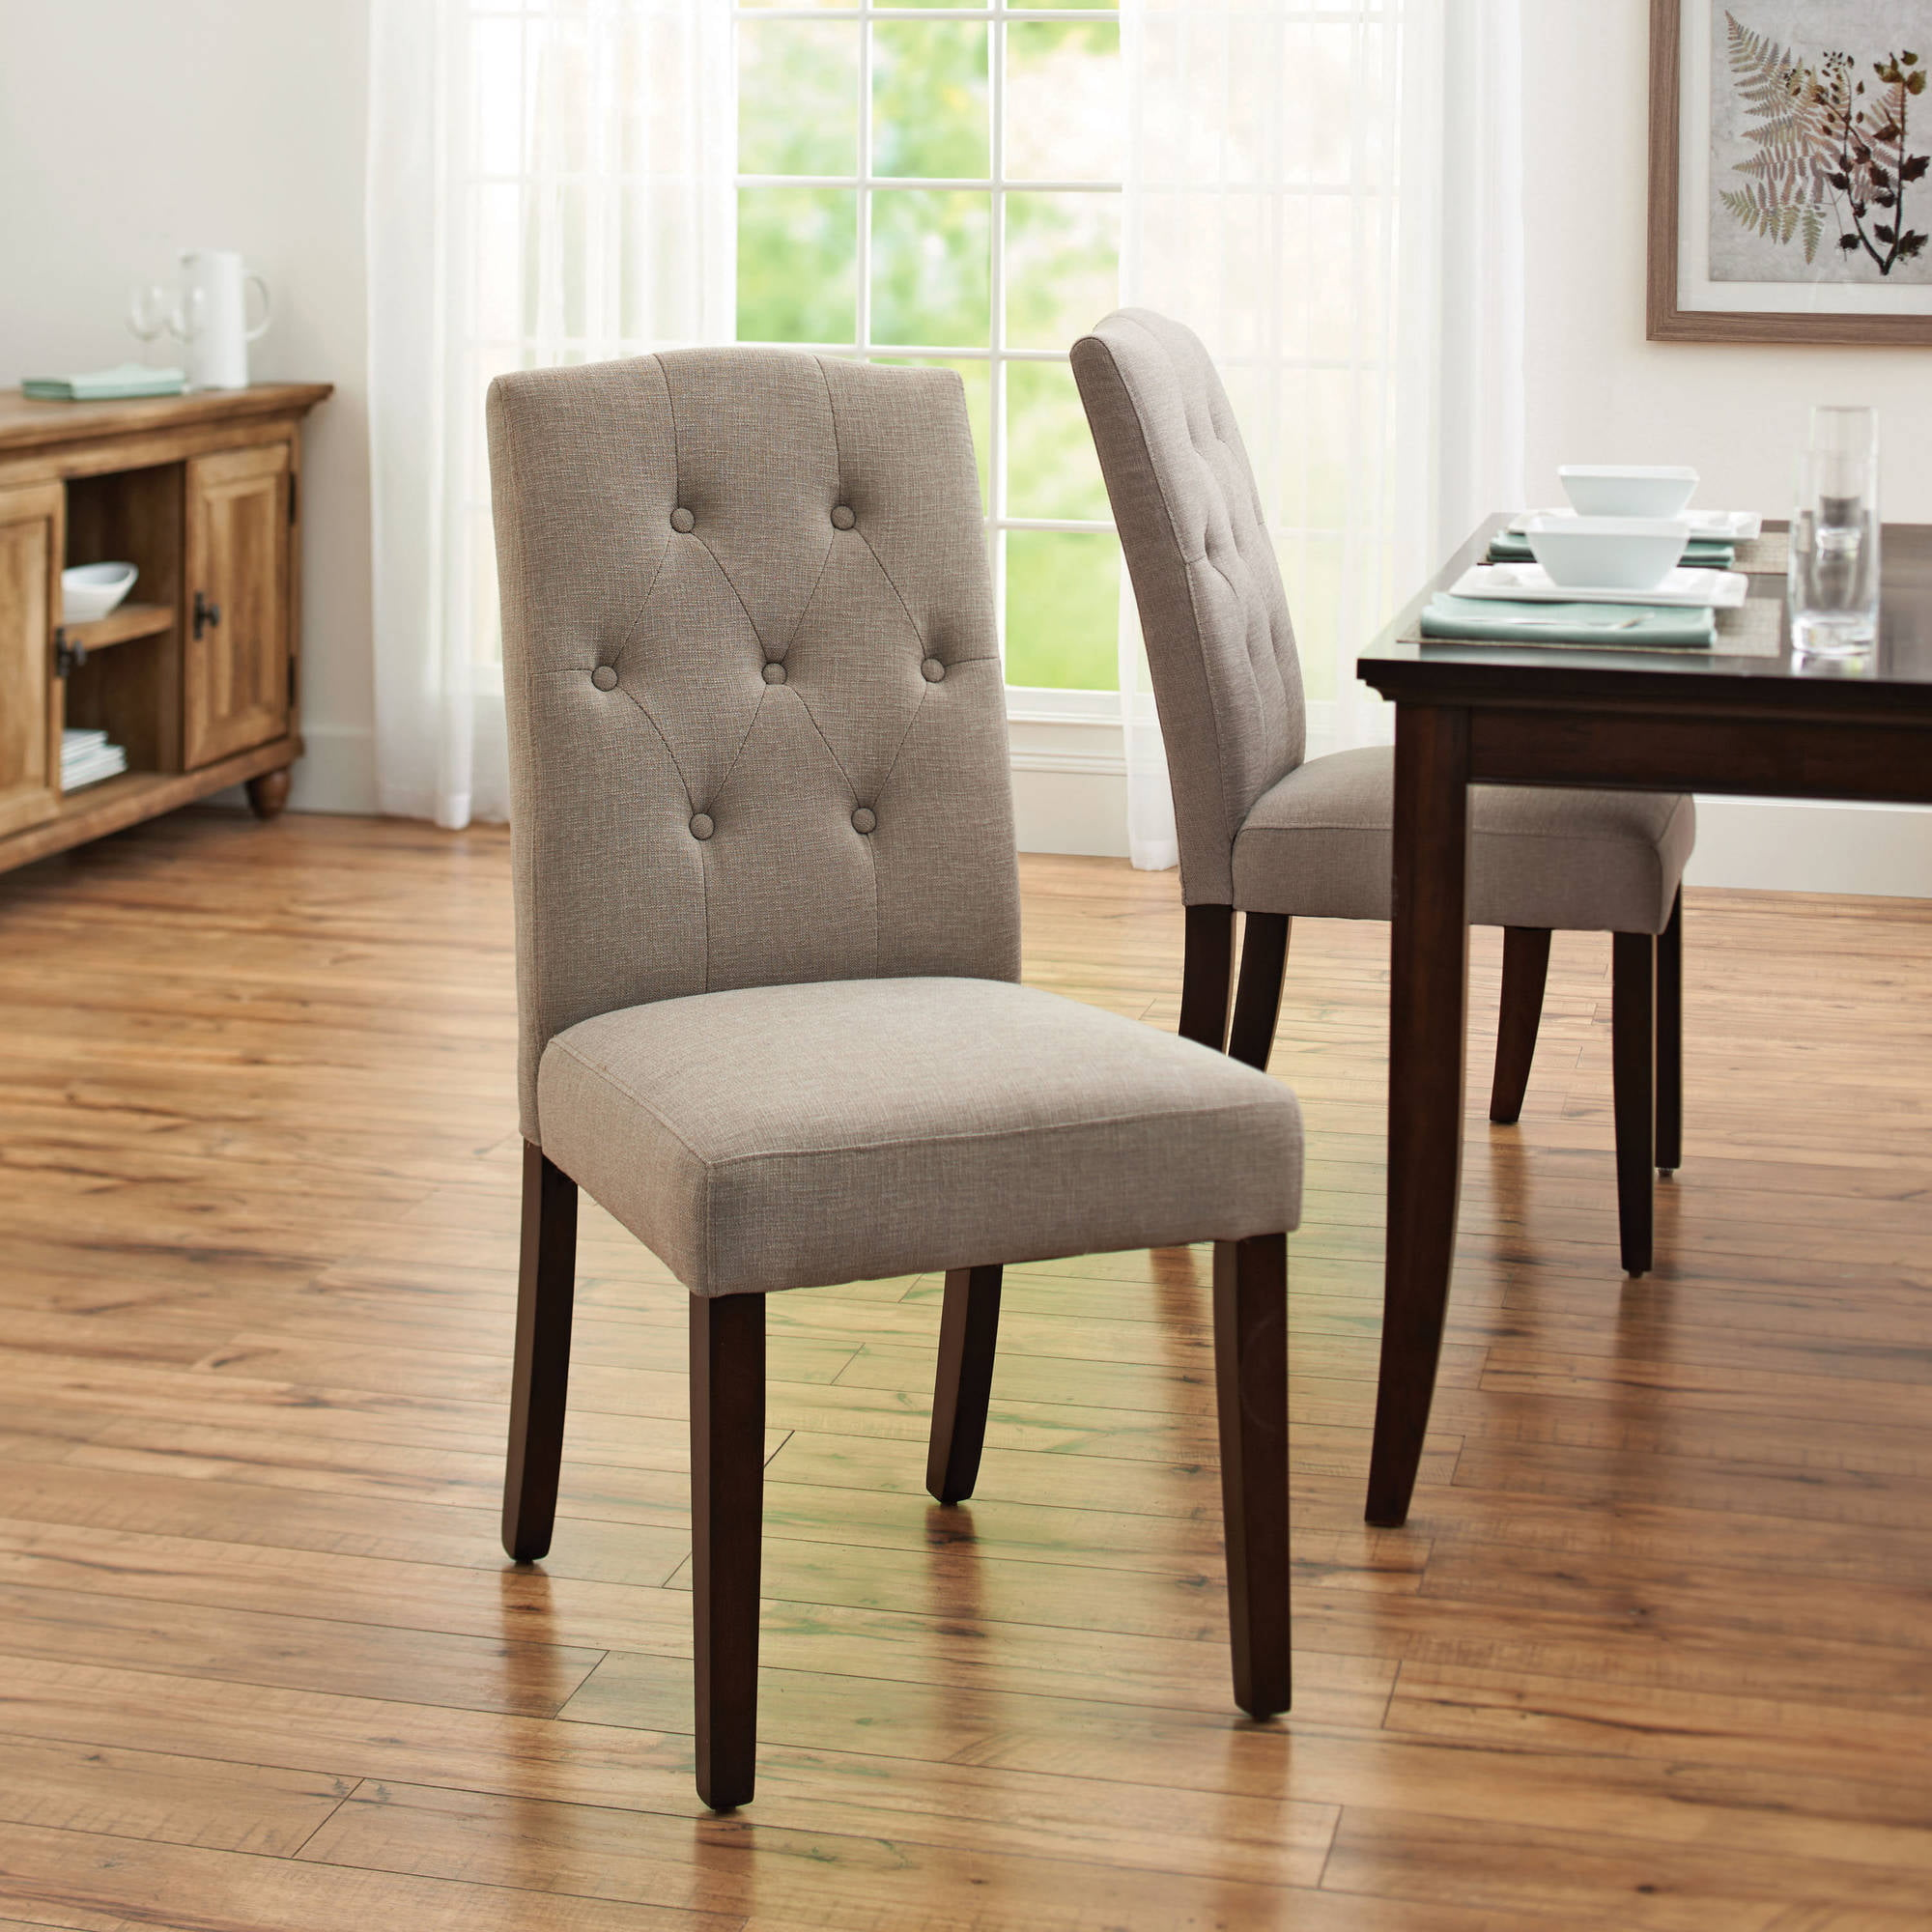 Shaker Dining Chairs Set Of 4 Espresso